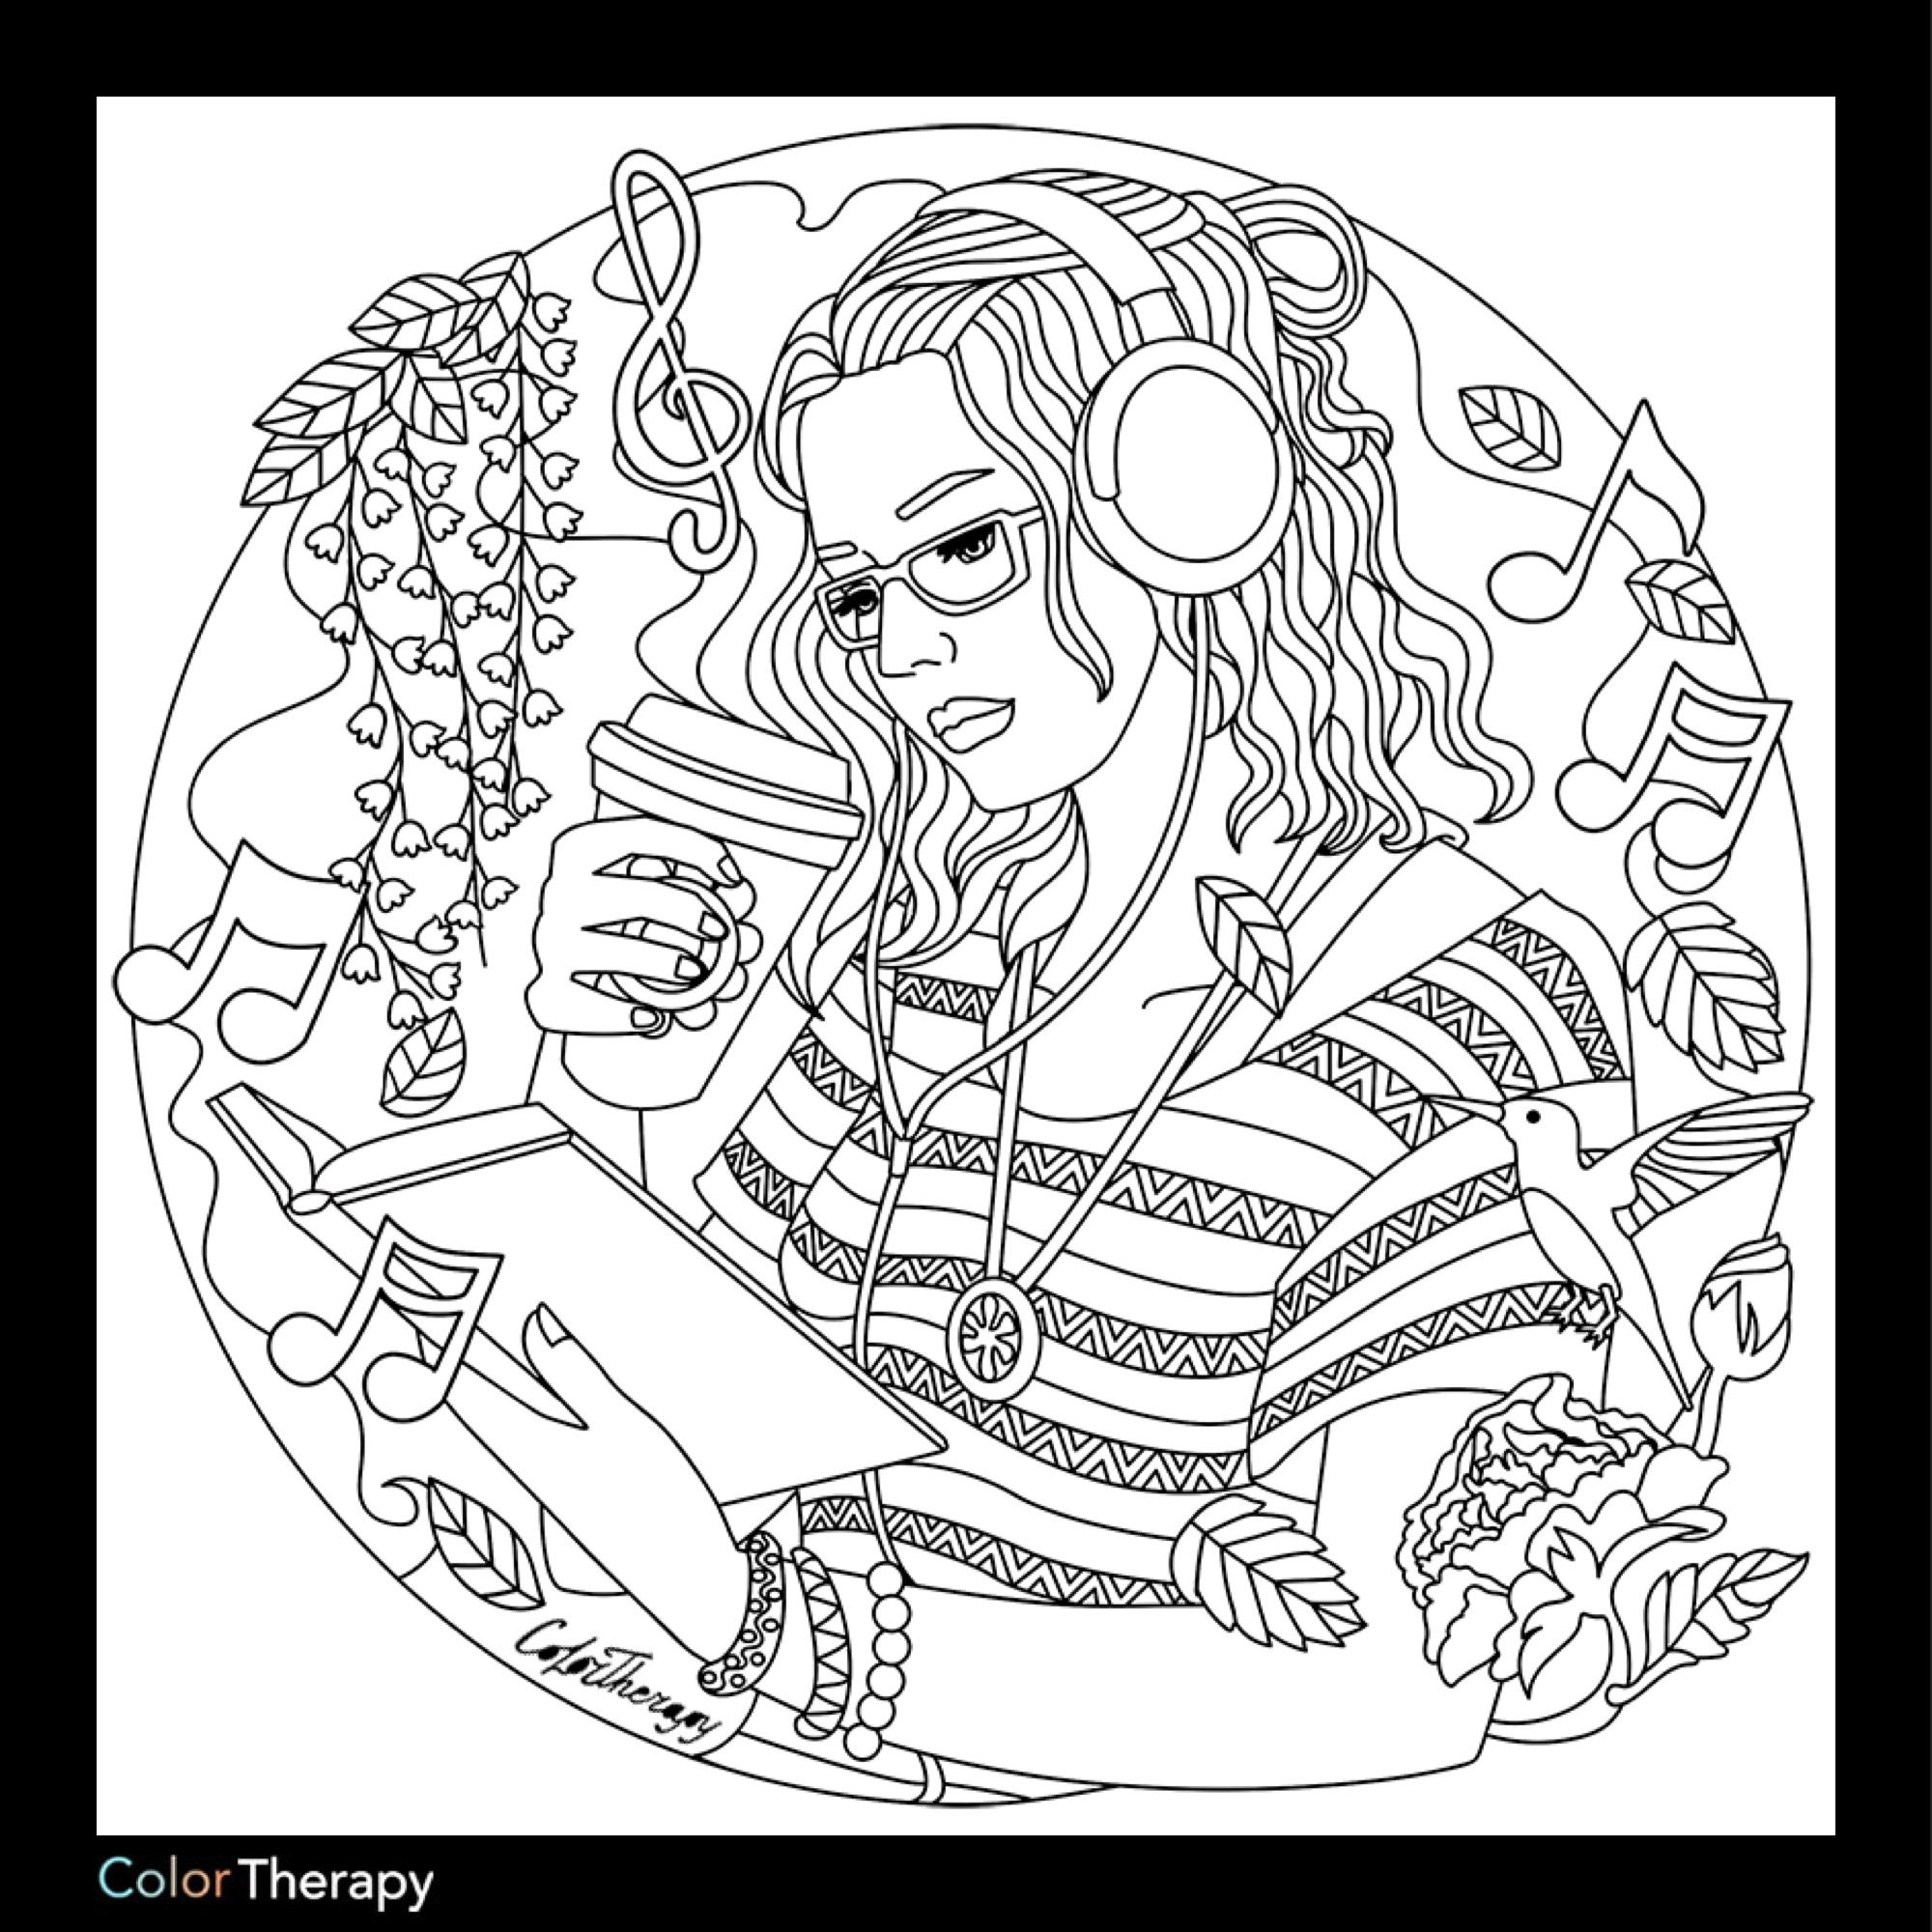 Coloring - Listening to music design · Paper CraftsCraft IdeasAdult  Coloring PagesColoring ...